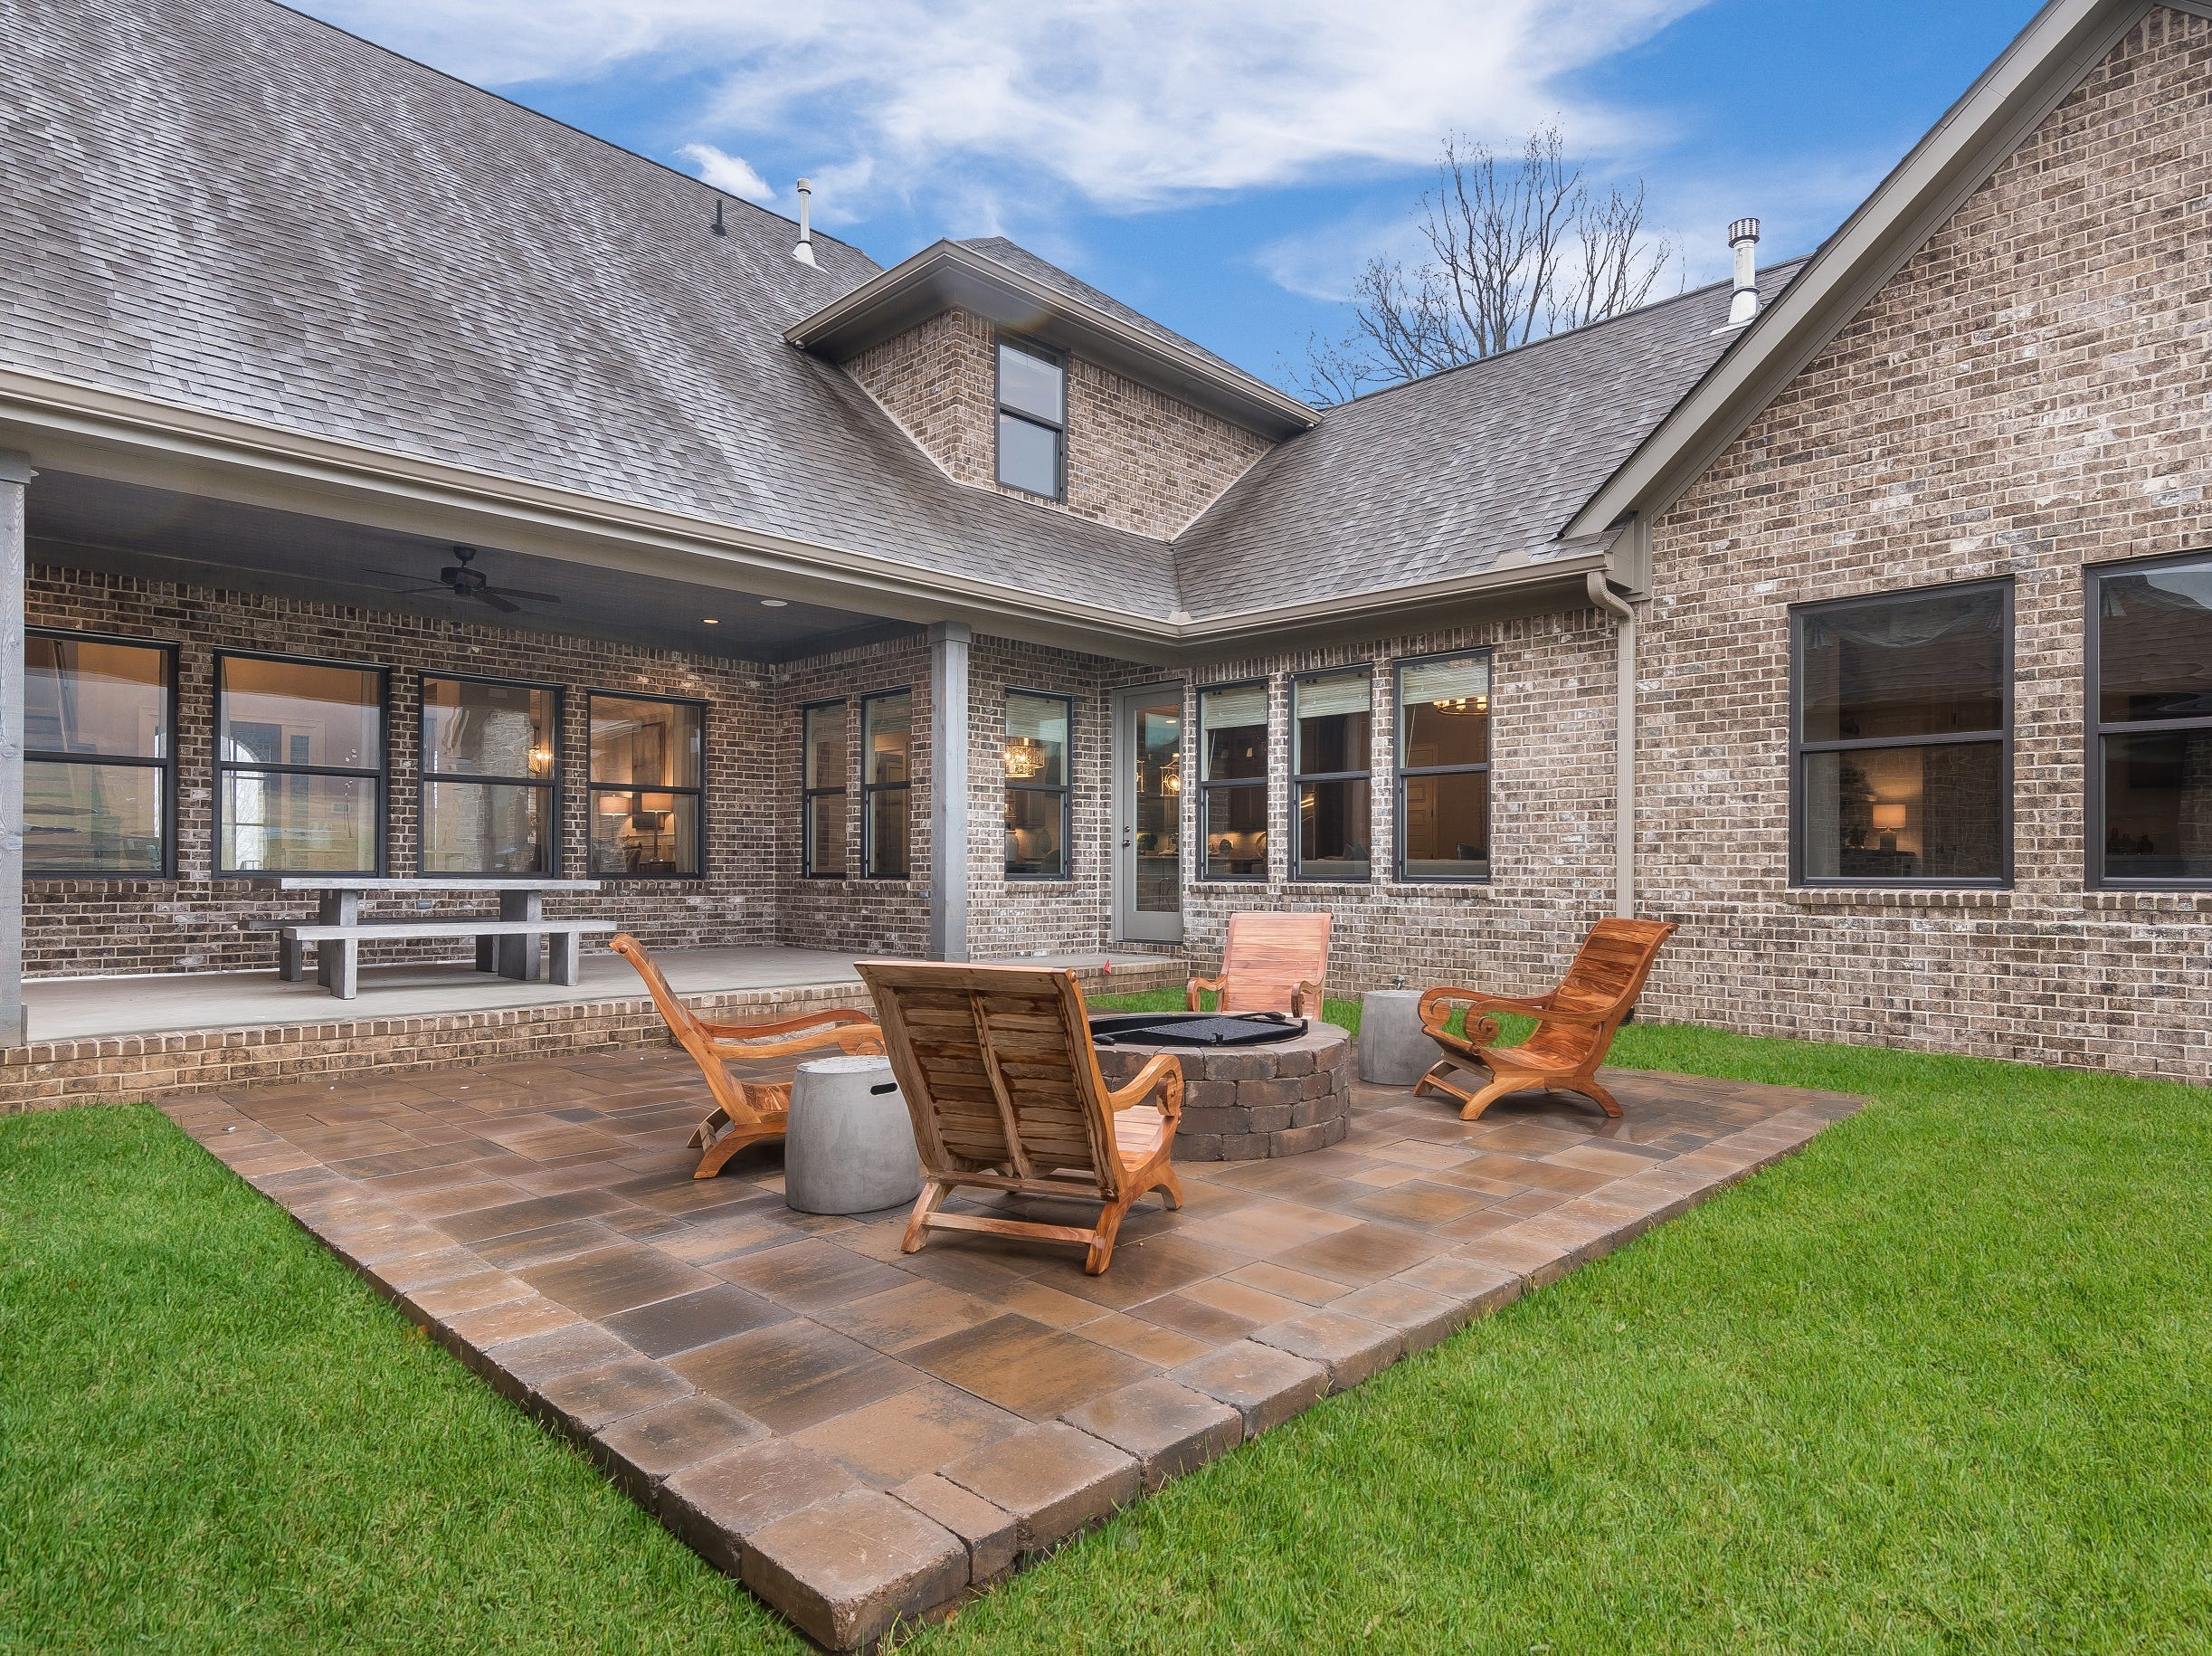 The patio and fire pit are upgraded features that are a part of this model home, which is on the market.